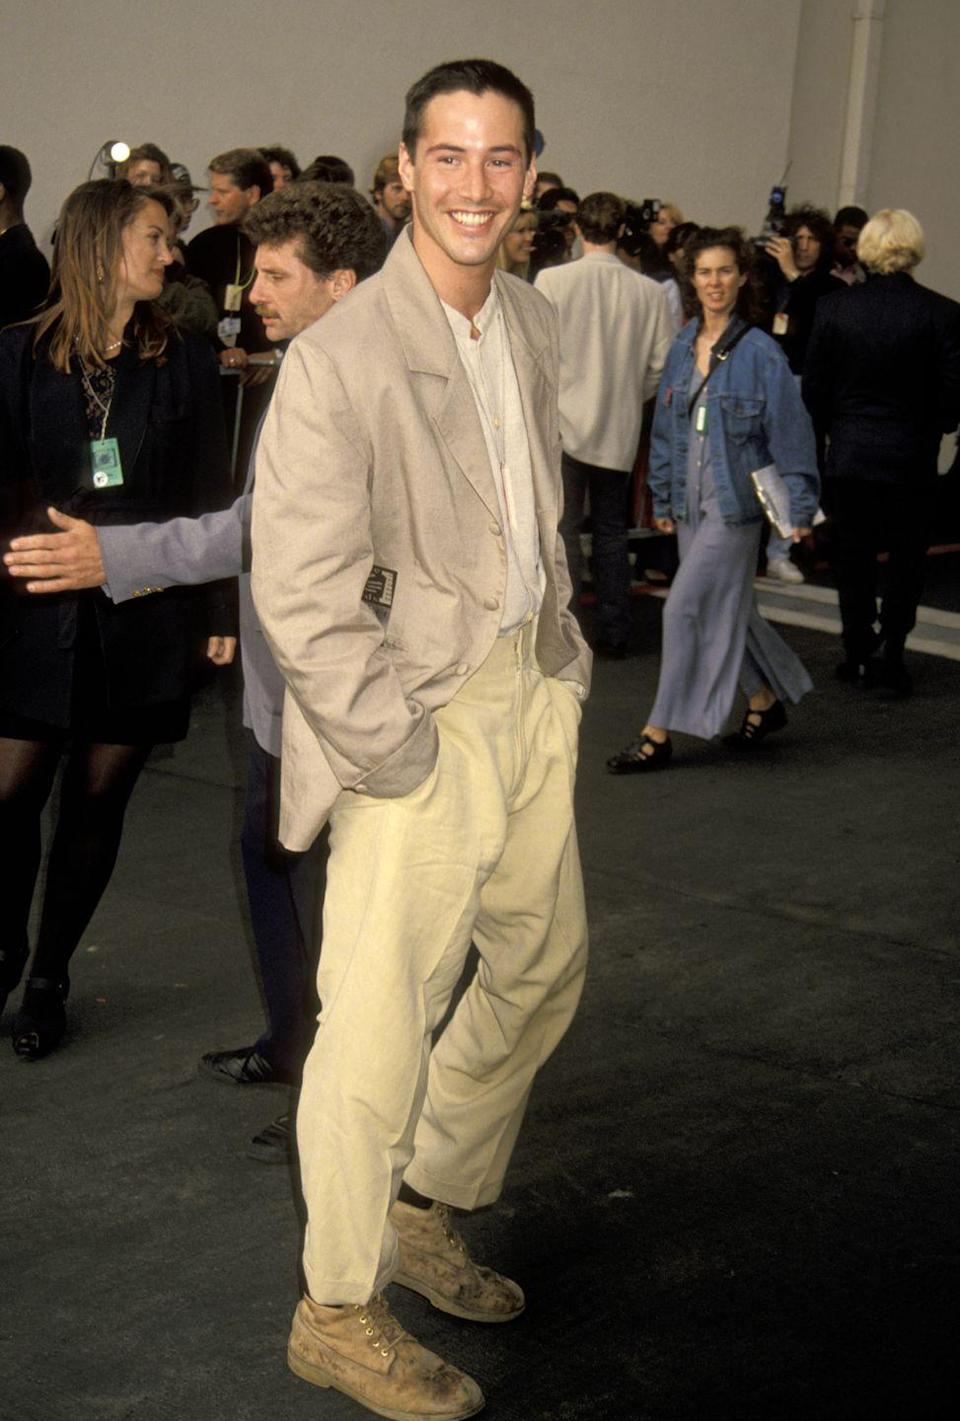 <p>Back in 1993, Keanu Reeves had some of the floppiest hair in Hollywood. So, it was a big deal when the actor shaved his head down to the bare minimum for his role in <em>Speed</em>. </p>